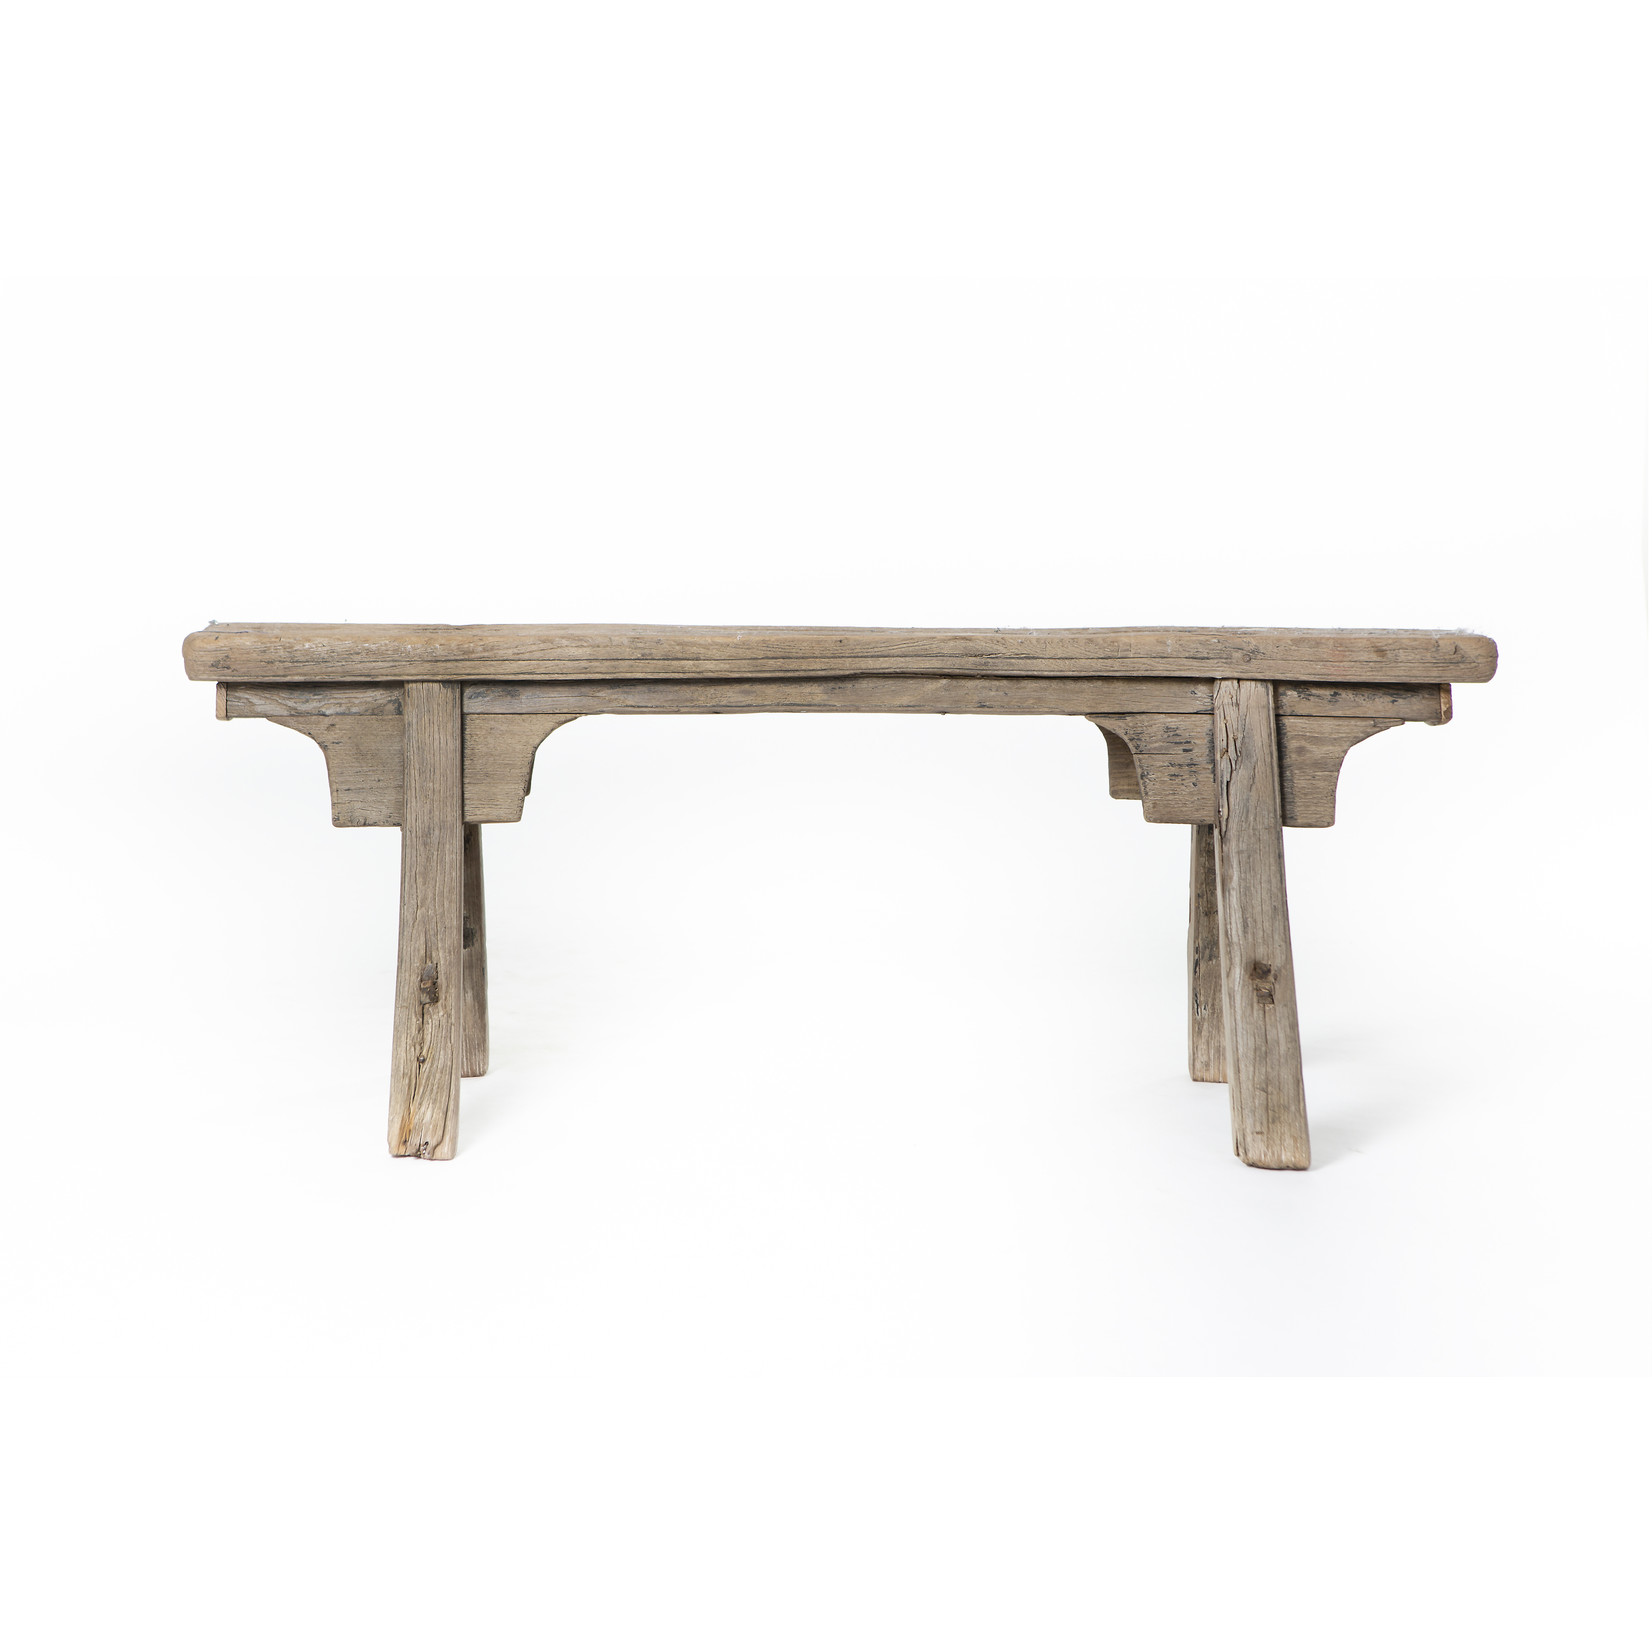 Antique Chinese wooden bench wit decorative ornaments